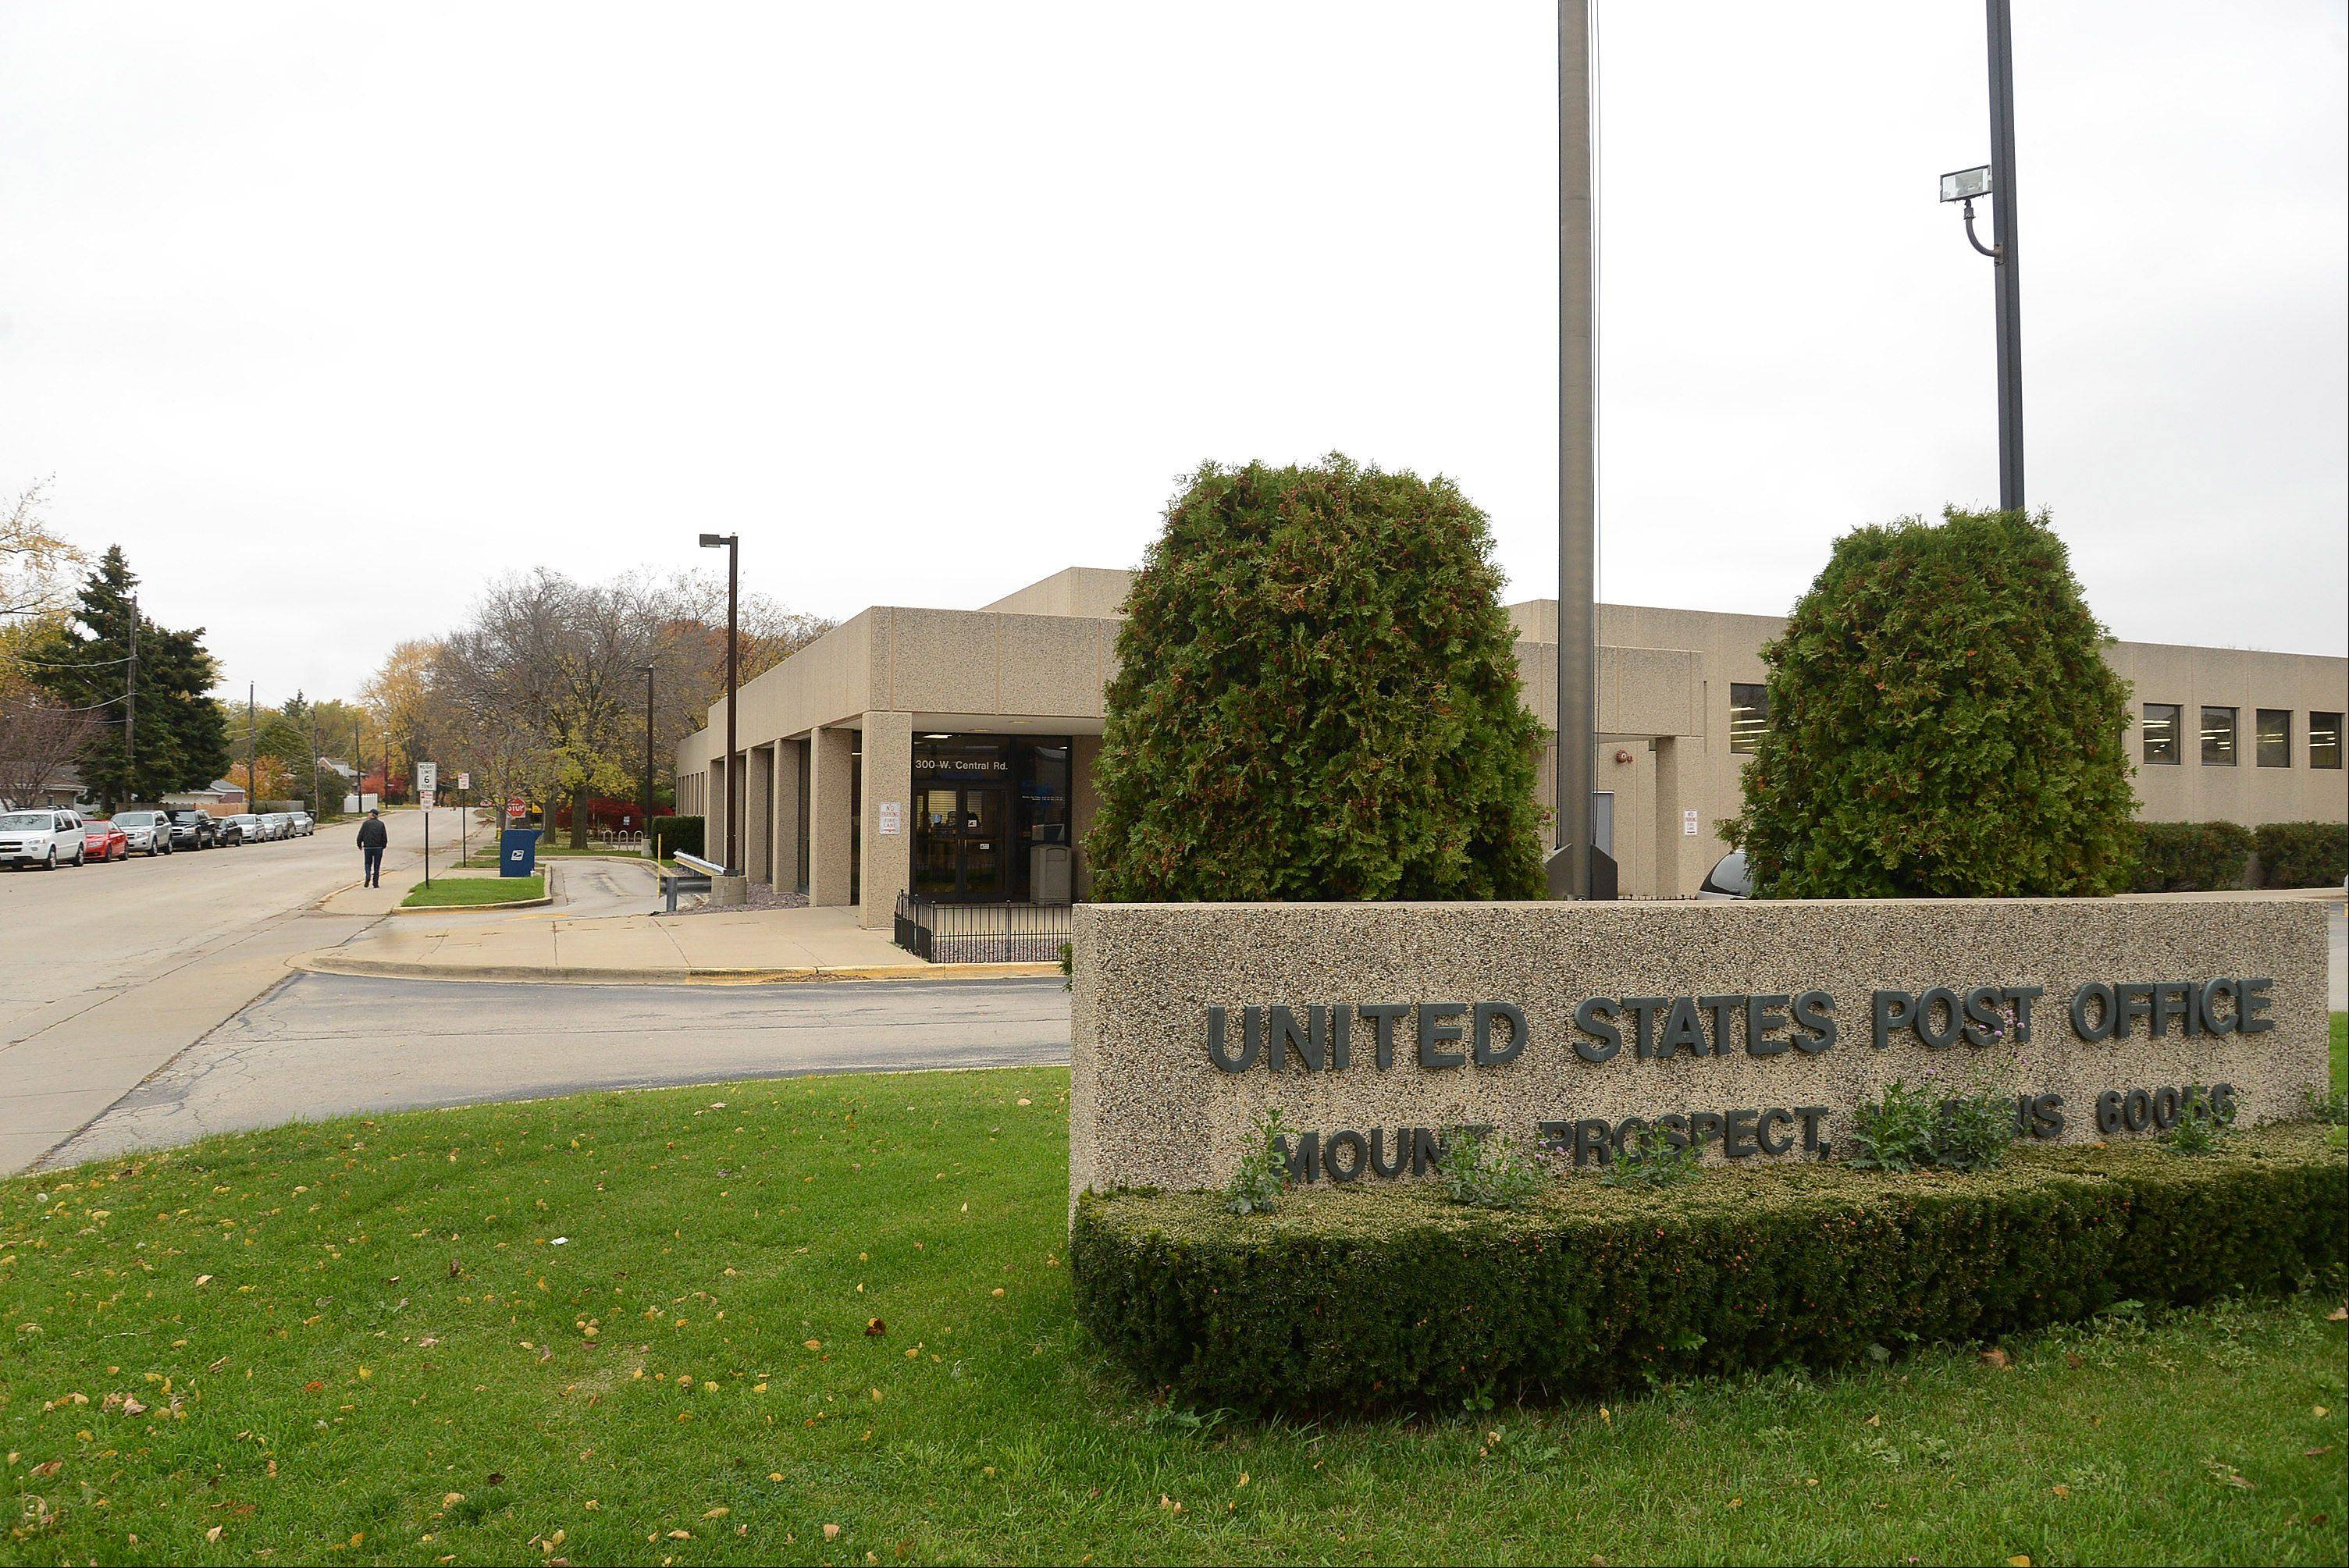 The Mount Prospect post office is on land well-suited for residential development should the facility close, according to a report by village consultants.